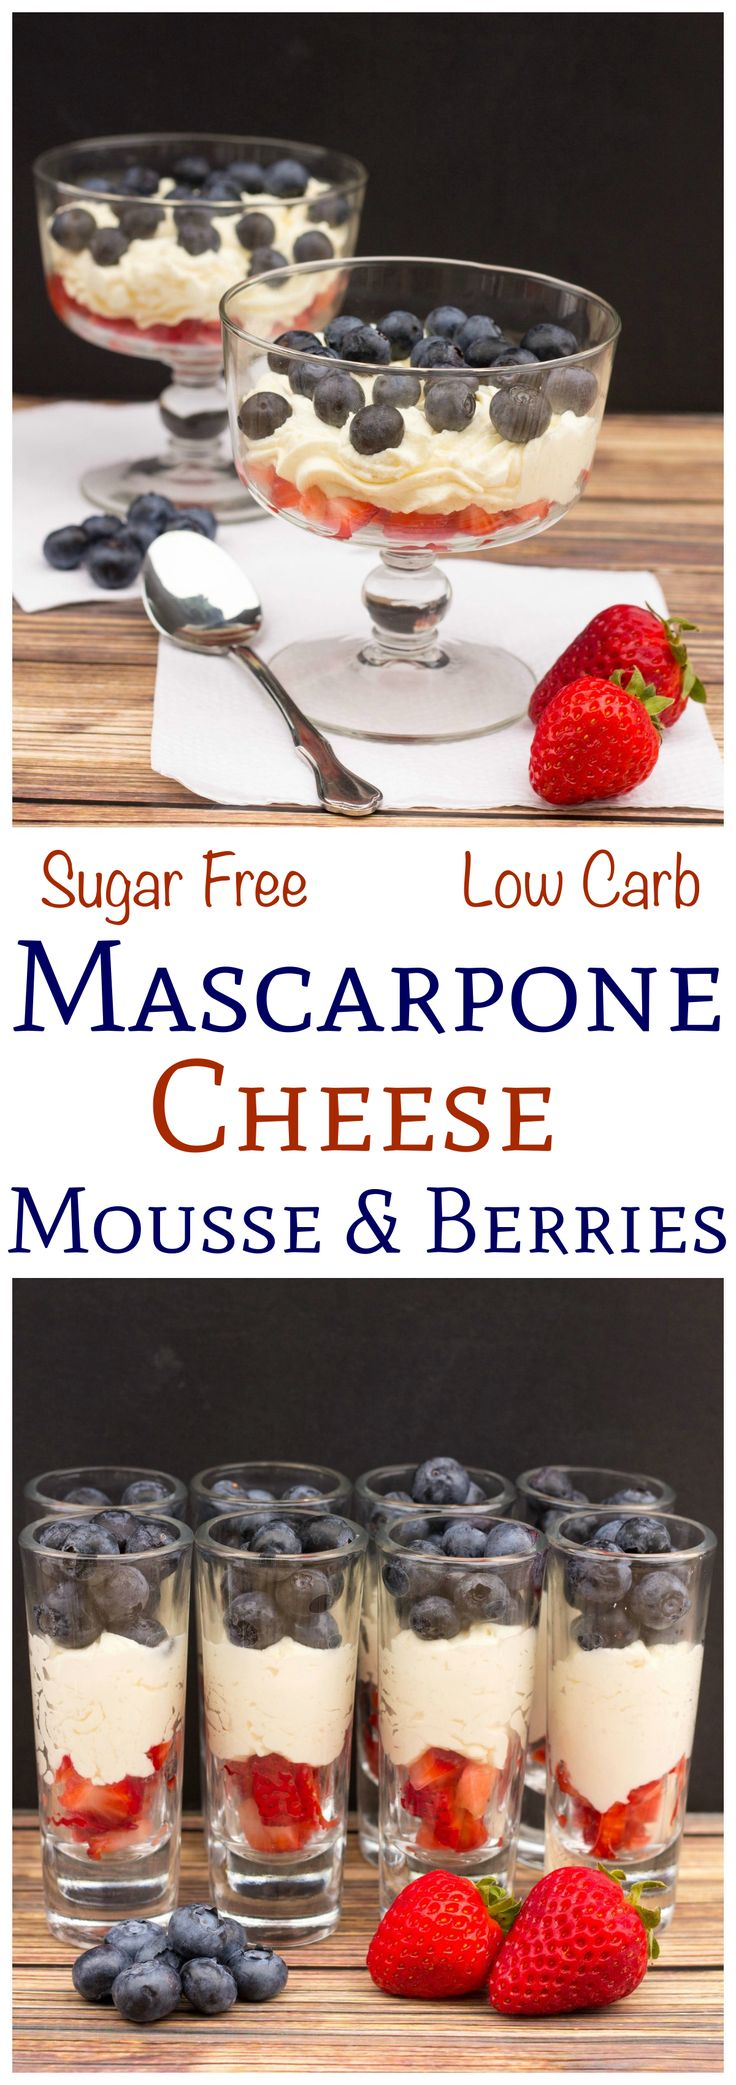 Need a quick low carb dessert? This sugar free mascarpone cheese mousse is made in under a minute using only three ingredients! Perfect served with berries!